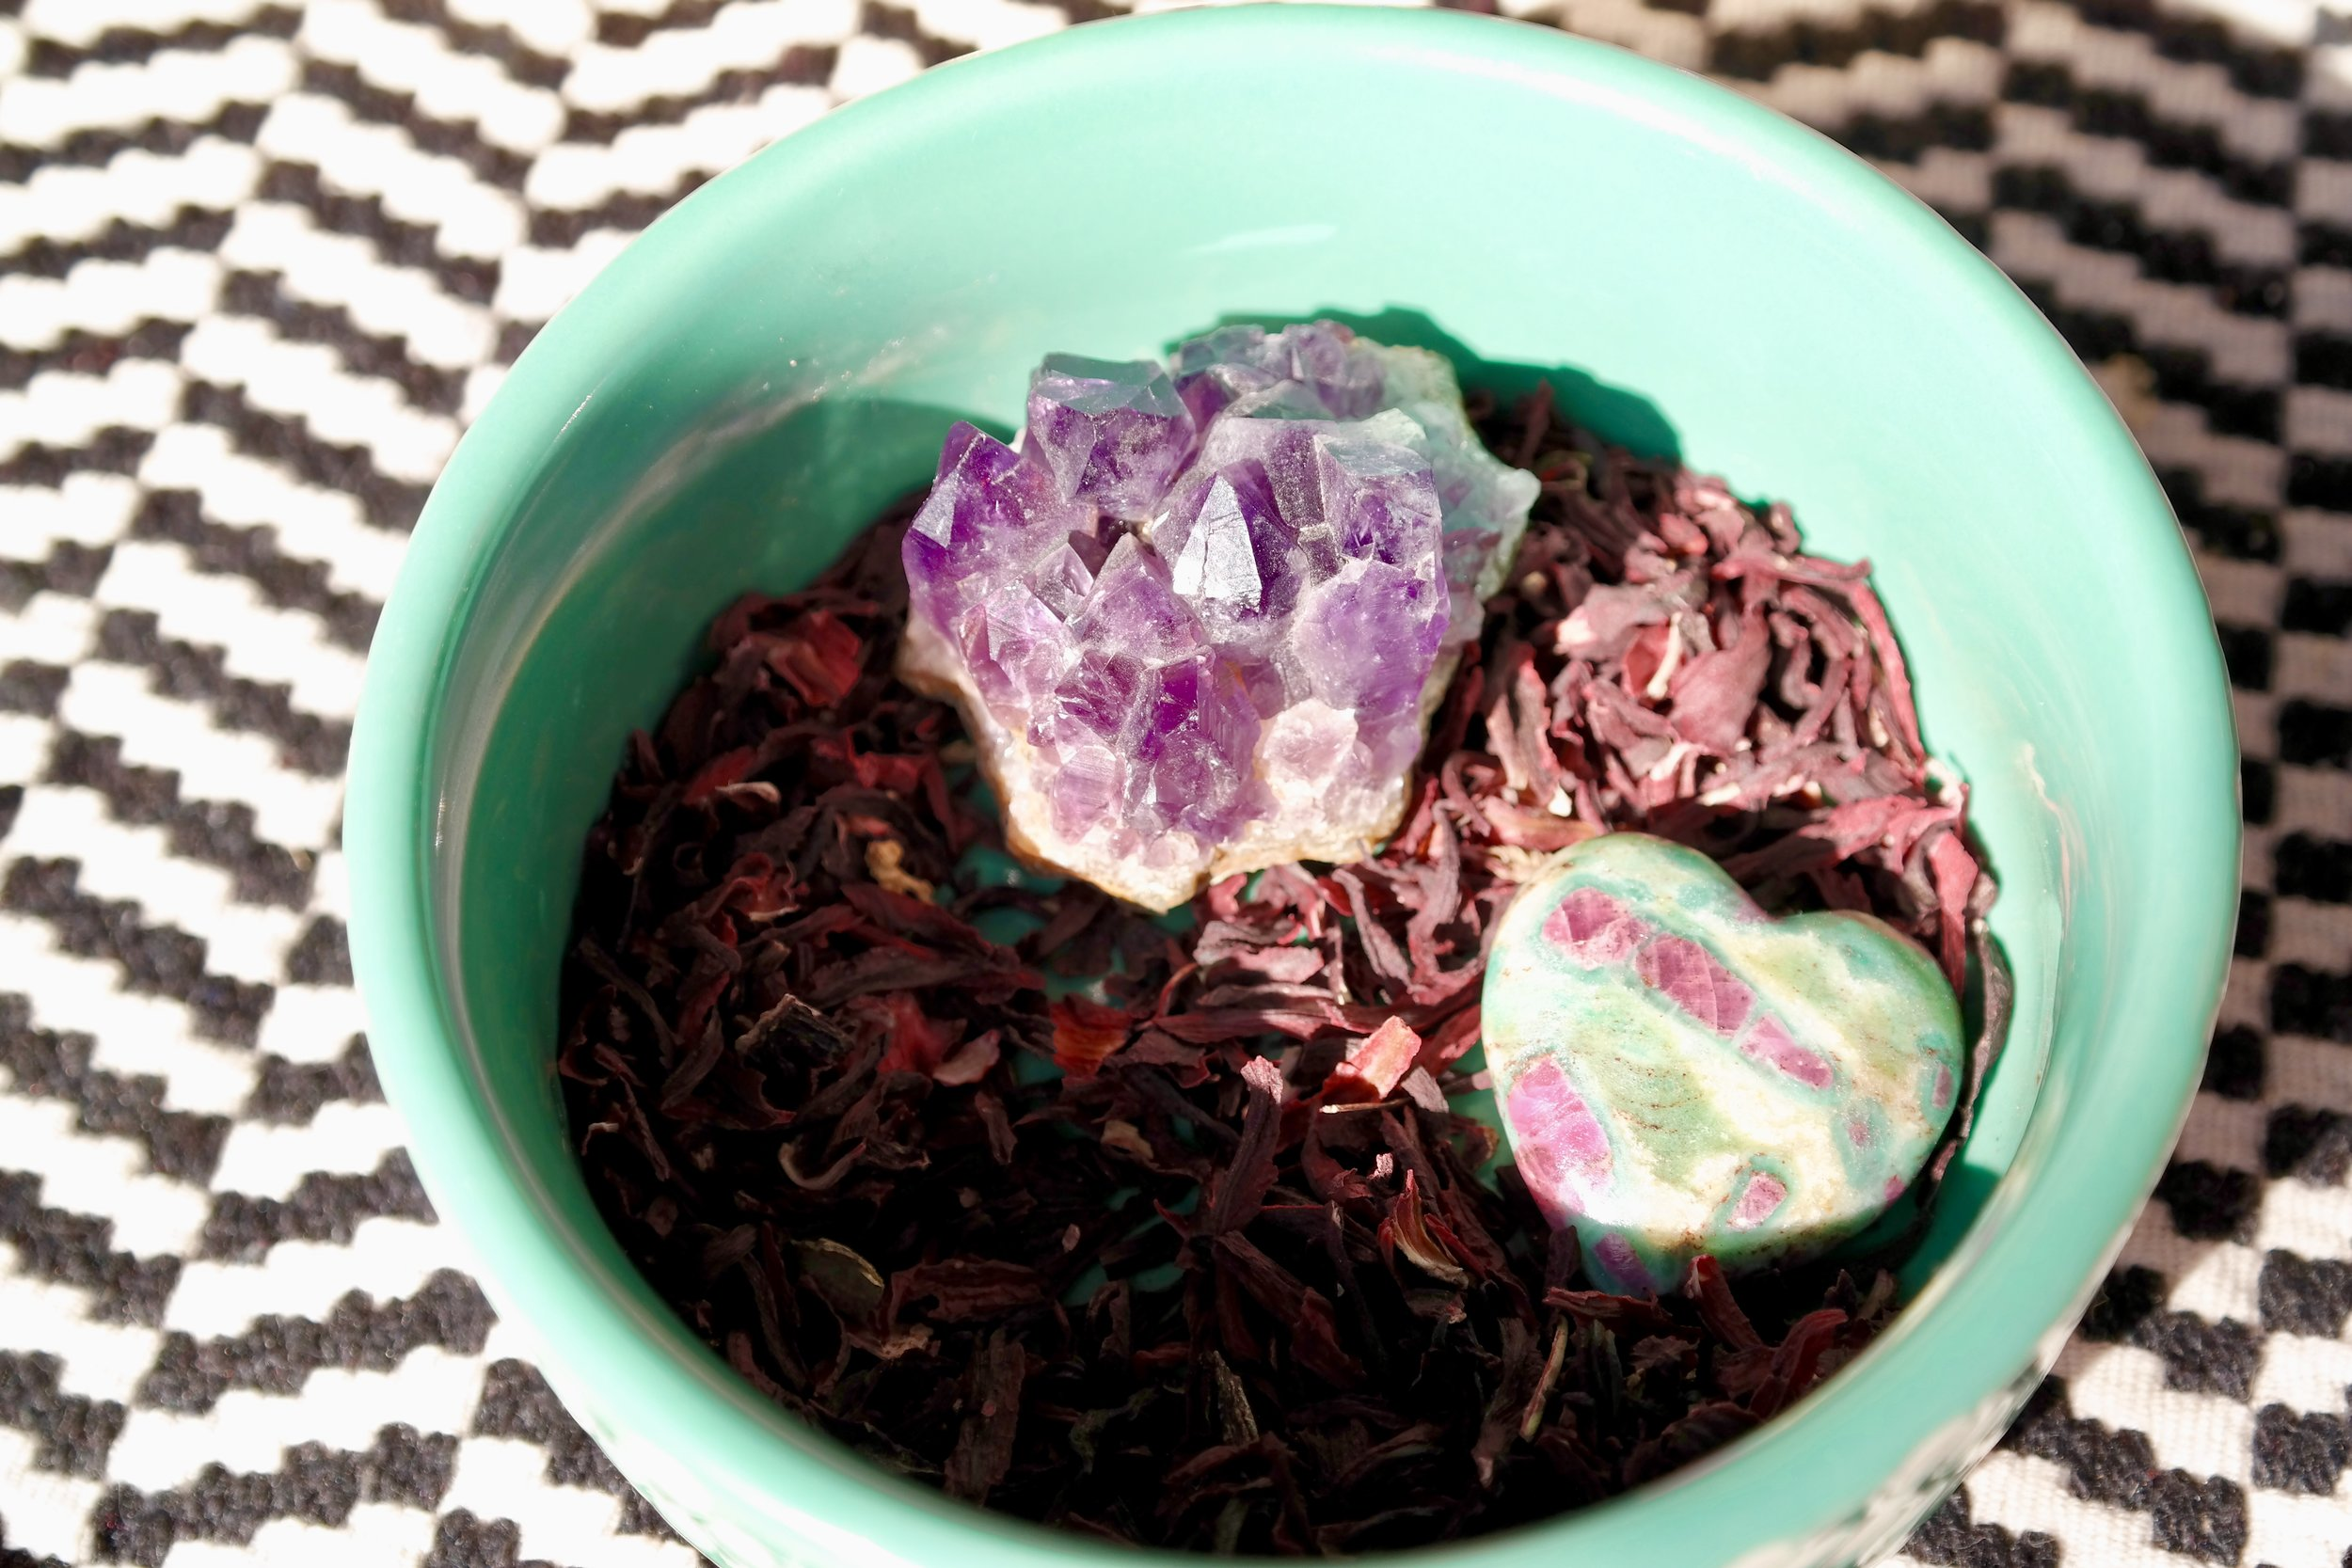 Infuse those tea leaves for bonus healing Crystal power!